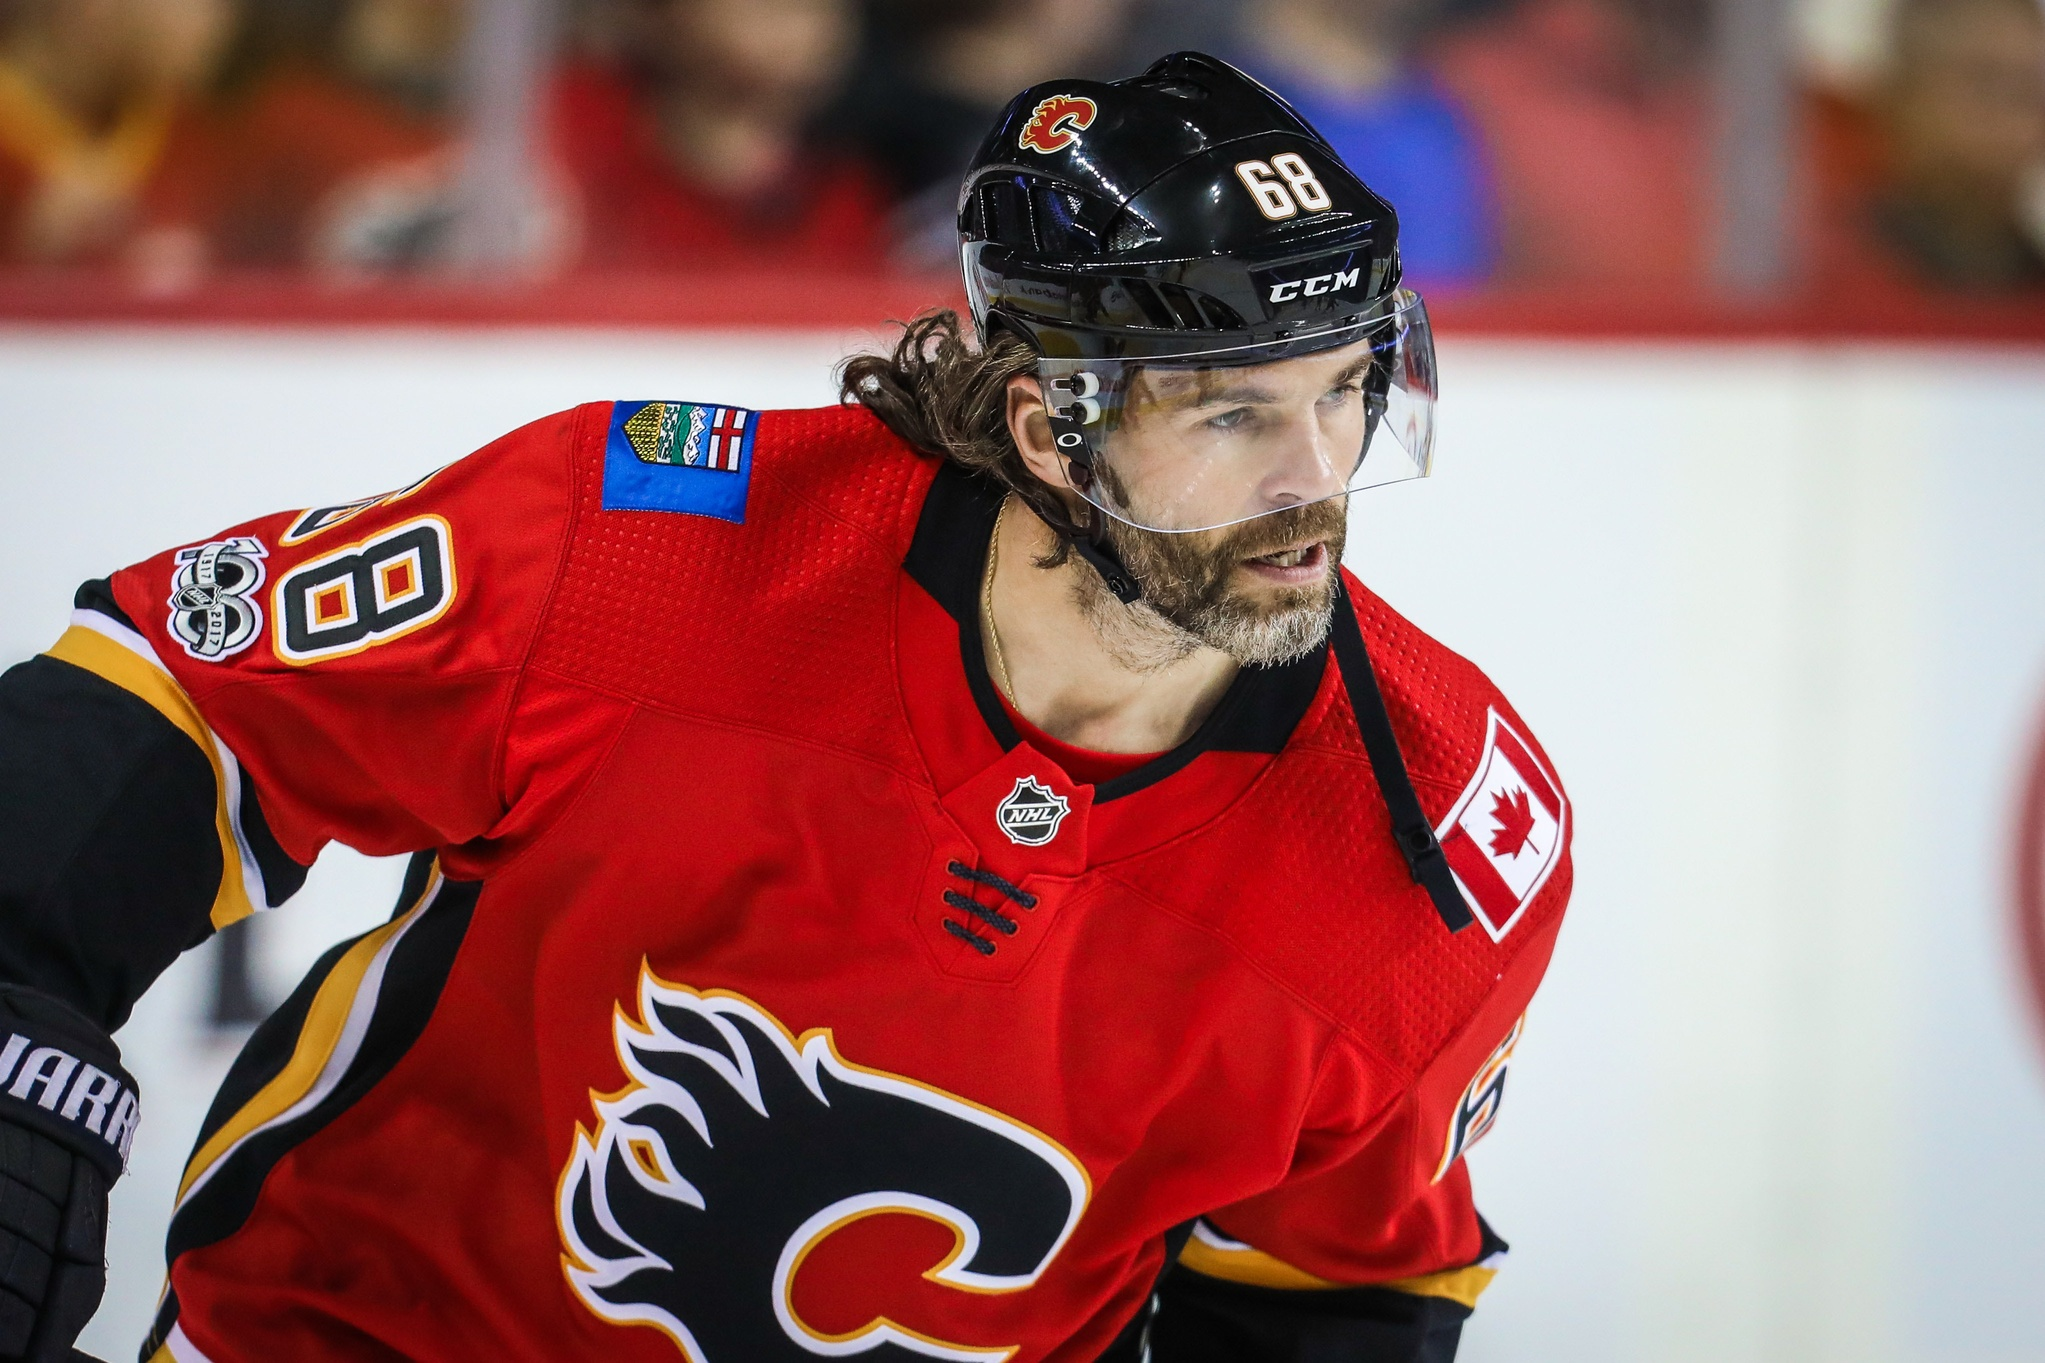 https://s3951.pcdn.co/wp-content/uploads/2015/09/Jaromir-Jagr-Flames.jpg